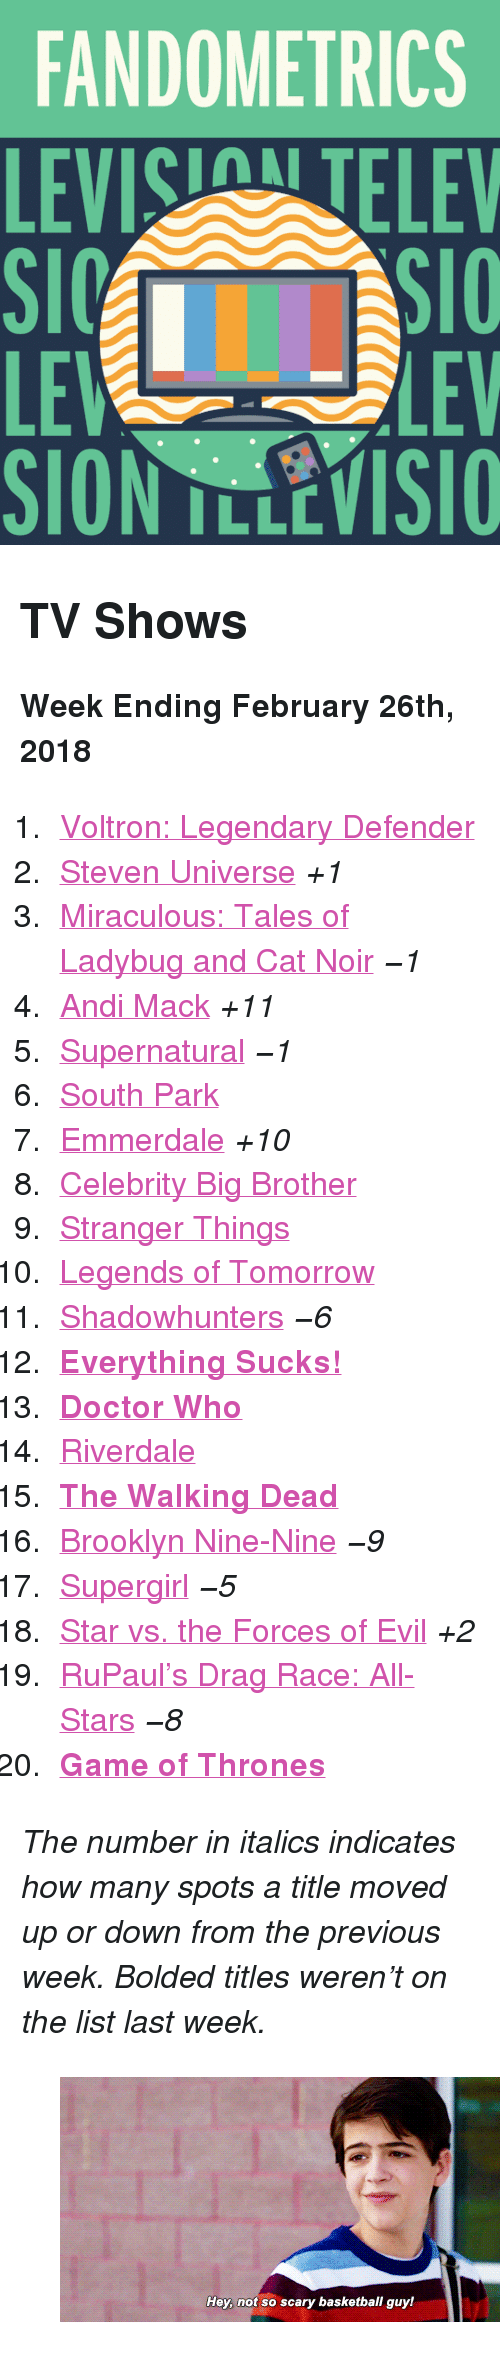 """Doctor Who: FANDOMETRICS  LEVIS TELEV  LE  LEV <h2>TV Shows</h2><p><b>Week Ending February 26th, 2018</b></p><ol><li><a href=""""http://www.tumblr.com/search/voltron"""">Voltron: Legendary Defender</a></li>  <li><a href=""""http://www.tumblr.com/search/steven%20universe"""">Steven Universe</a><i>+1</i></li>  <li><a href=""""http://www.tumblr.com/search/miraculous%20ladybug"""">Miraculous: Tales of Ladybug and Cat Noir</a><i><i>−1</i></i></li>  <li><a href=""""http://www.tumblr.com/search/andi%20mack"""">Andi Mack</a><i>+11</i></li>  <li><a href=""""http://www.tumblr.com/search/supernatural"""">Supernatural</a><i><i>−1</i></i></li>  <li><a href=""""http://www.tumblr.com/search/south%20park"""">South Park</a></li>  <li><a href=""""http://www.tumblr.com/search/emmerdale"""">Emmerdale</a><i>+10</i></li>  <li><a href=""""http://www.tumblr.com/search/cbbus"""">Celebrity Big Brother</a></li>  <li><a href=""""http://www.tumblr.com/search/stranger%20things"""">Stranger Things</a></li>  <li><a href=""""http://www.tumblr.com/search/legends%20of%20tomorrow"""">Legends of Tomorrow</a></li>  <li><a href=""""http://www.tumblr.com/search/shadowhunters"""">Shadowhunters</a><i><i>−6</i></i></li>  <li><a href=""""http://www.tumblr.com/search/everything%20sucks!""""><b>Everything Sucks!</b></a></li>  <li><a href=""""http://www.tumblr.com/search/doctor%20who""""><b>Doctor Who</b></a></li>  <li><a href=""""http://www.tumblr.com/search/riverdale"""">Riverdale</a></li>  <li><a href=""""http://www.tumblr.com/search/the%20walking%20dead""""><b>The Walking Dead</b></a></li>  <li><a href=""""http://www.tumblr.com/search/brooklyn%20nine%20nine"""">Brooklyn Nine-Nine</a><i><i>−9</i></i></li>  <li><a href=""""http://www.tumblr.com/search/supergirl"""">Supergirl</a><i><i>−5</i></i></li>  <li><a href=""""http://www.tumblr.com/search/star%20vs%20the%20forces%20of%20evil"""">Star vs. the Forces of Evil</a><i>+2</i></li>  <li><a href=""""http://www.tumblr.com/search/rupaul's%20drag%20race"""">RuPaul&rsquo;s Drag Race: All-Stars</a><i><i>−8</i></i></li>  <li><a href=""""http://www.tumblr.com/search/game%20of%20throne"""